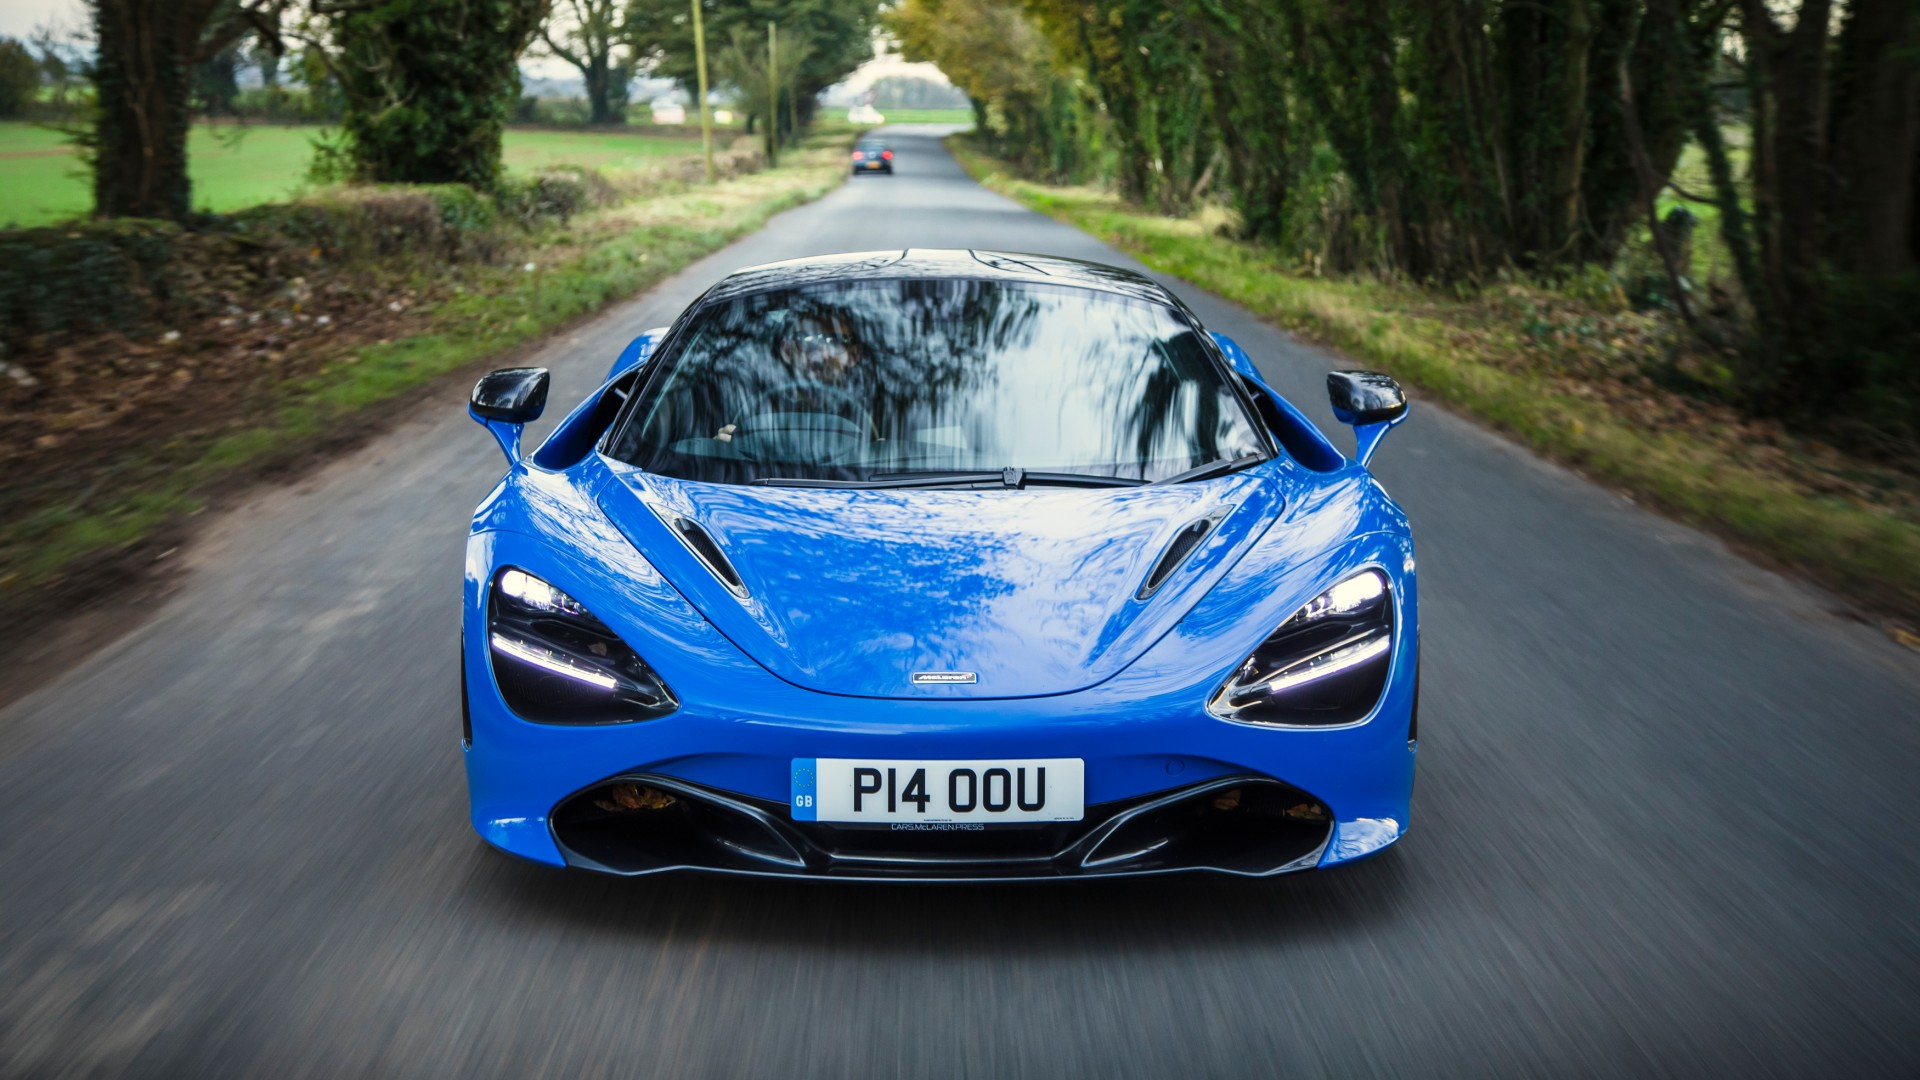 Car Wallpaper For Pc Mclaren 720s 2017 4 Wallpaper Hd Car Wallpapers Id 8983